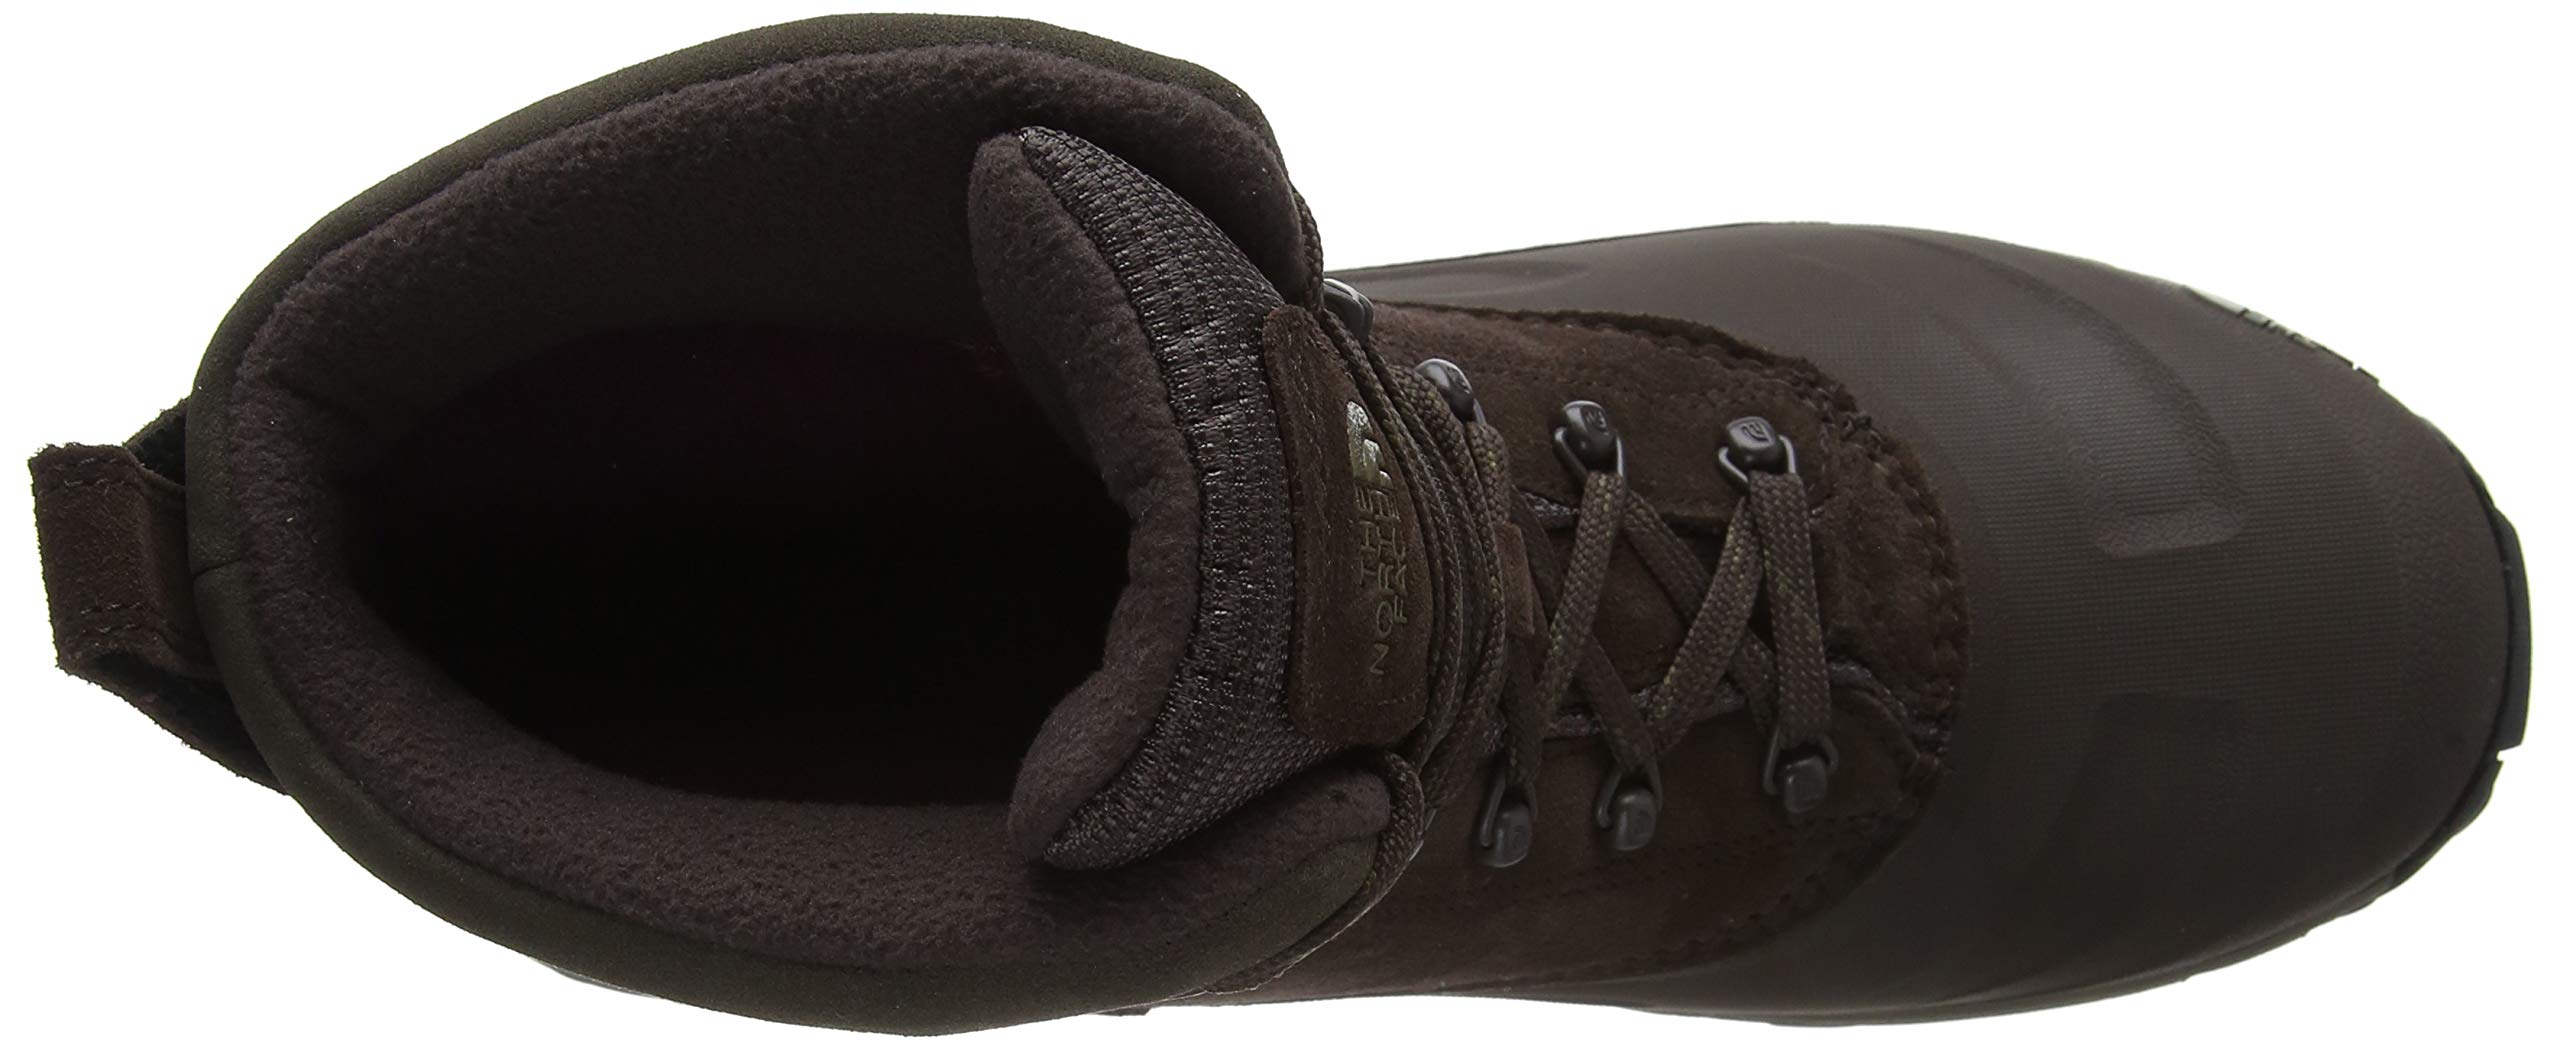 71PAvD7eQmL - THE NORTH FACE Men's Chilkat Iii High Rise Hiking Boots